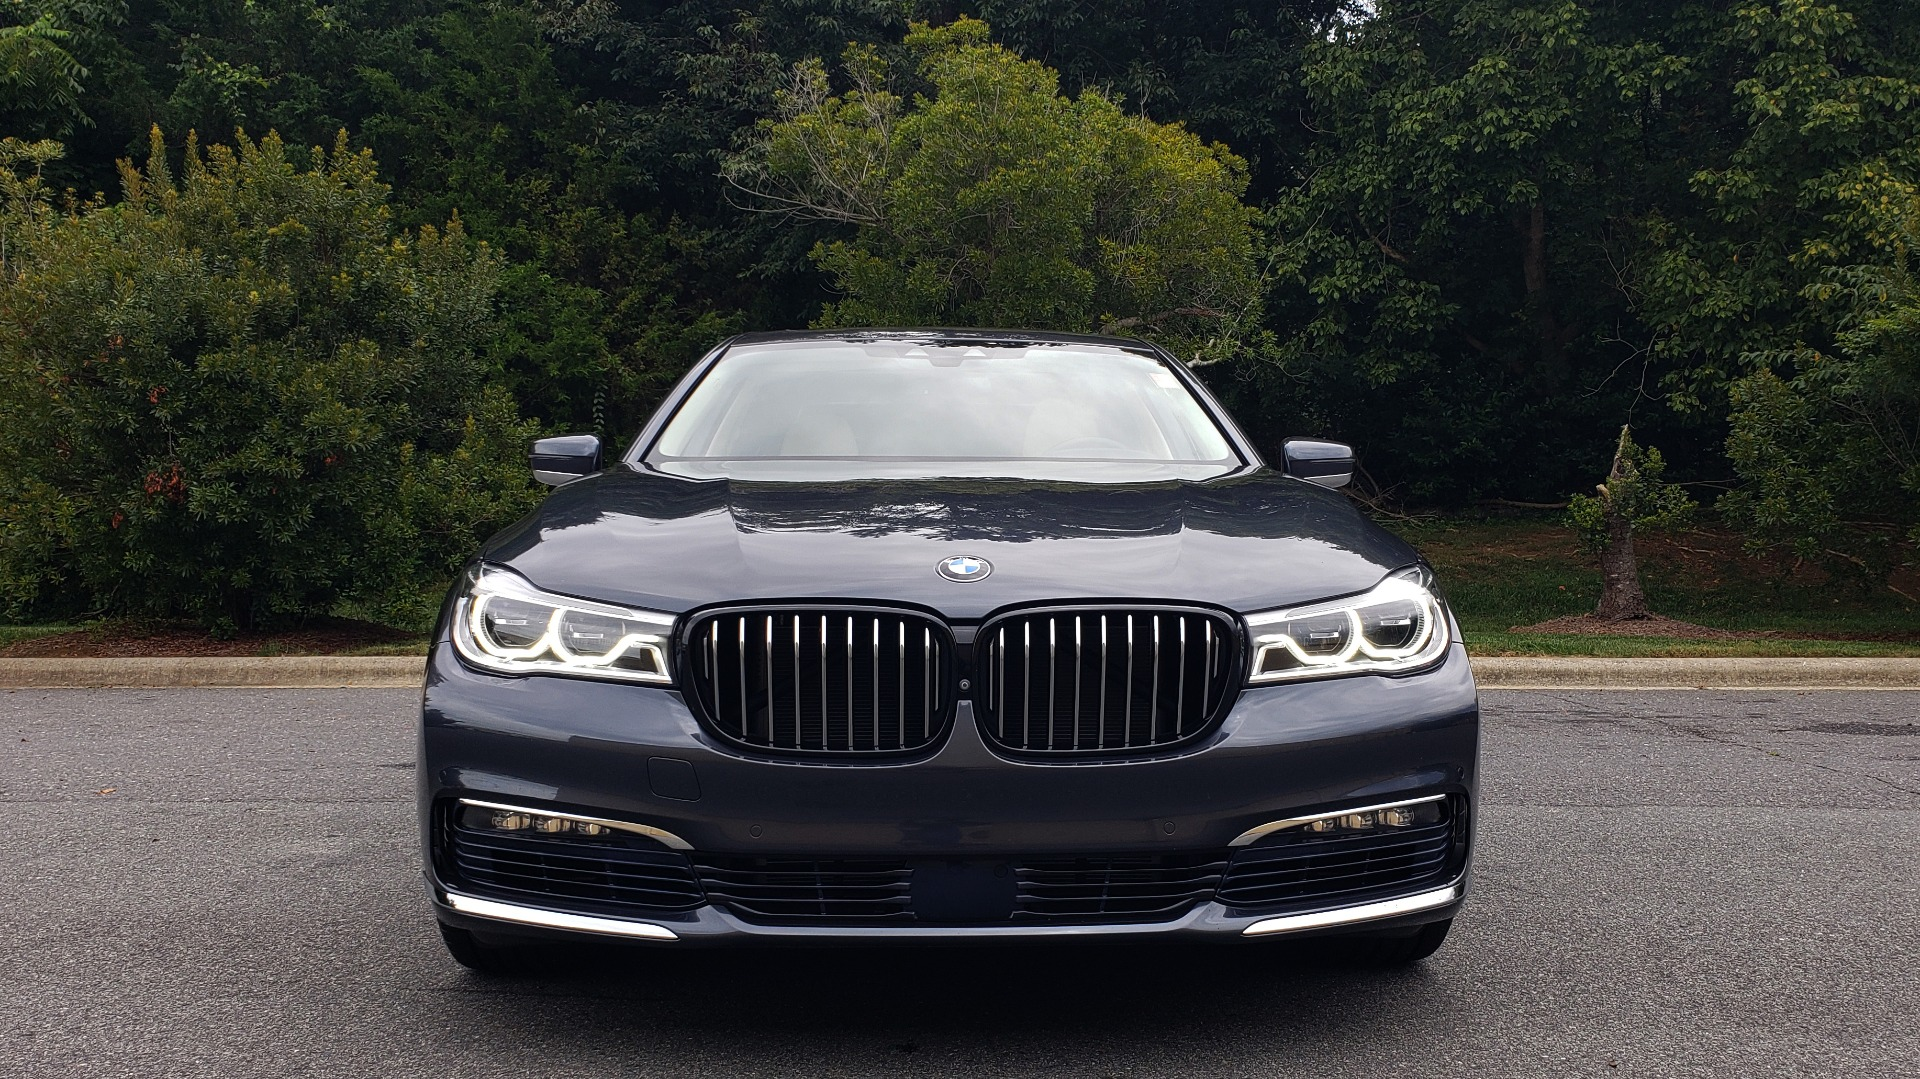 Used 2016 BMW 7 SERIES 750I EXEC PKG / DRVR ASST PLUS / CLD WTHR / SKY LOUNGE ROOF for sale Sold at Formula Imports in Charlotte NC 28227 17